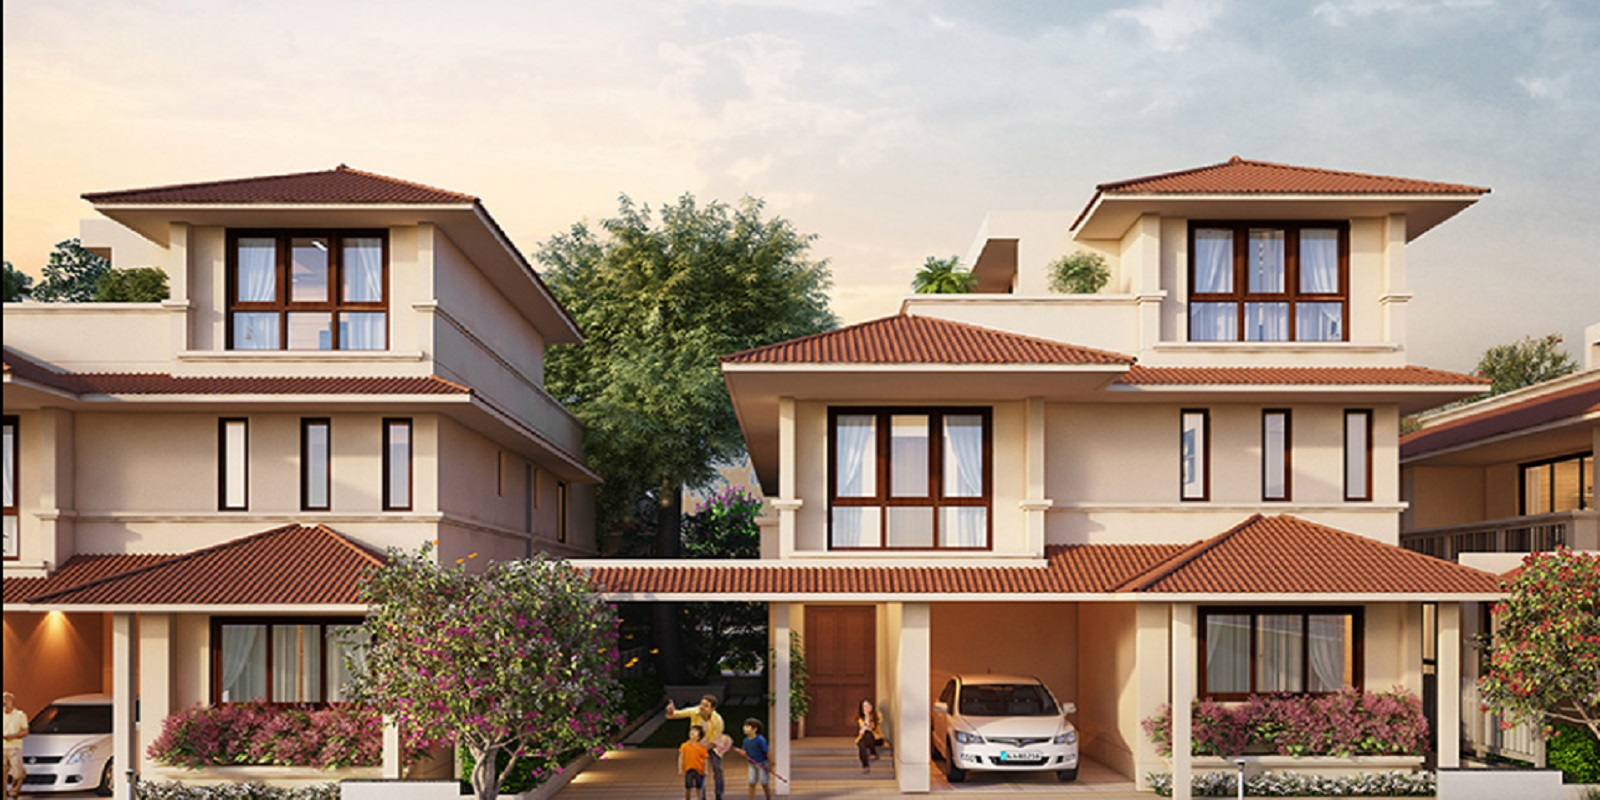 adarsh tranqville project large image2